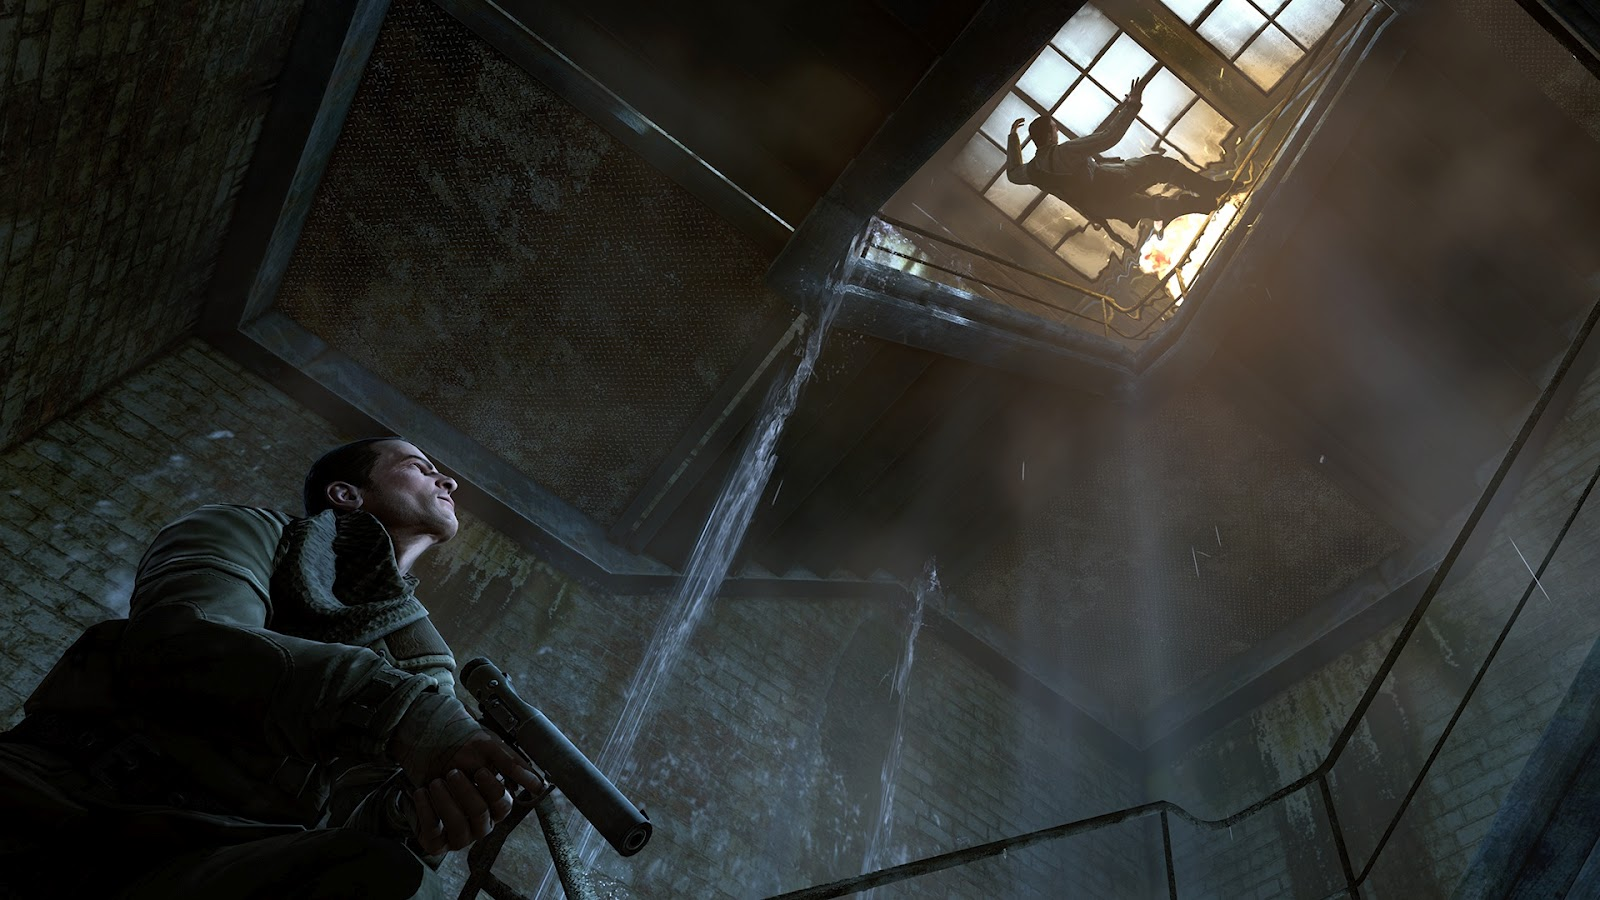 Sniper Elite V2 Full HD Wallpapers 1080p Wallpaper Store for 1600x900